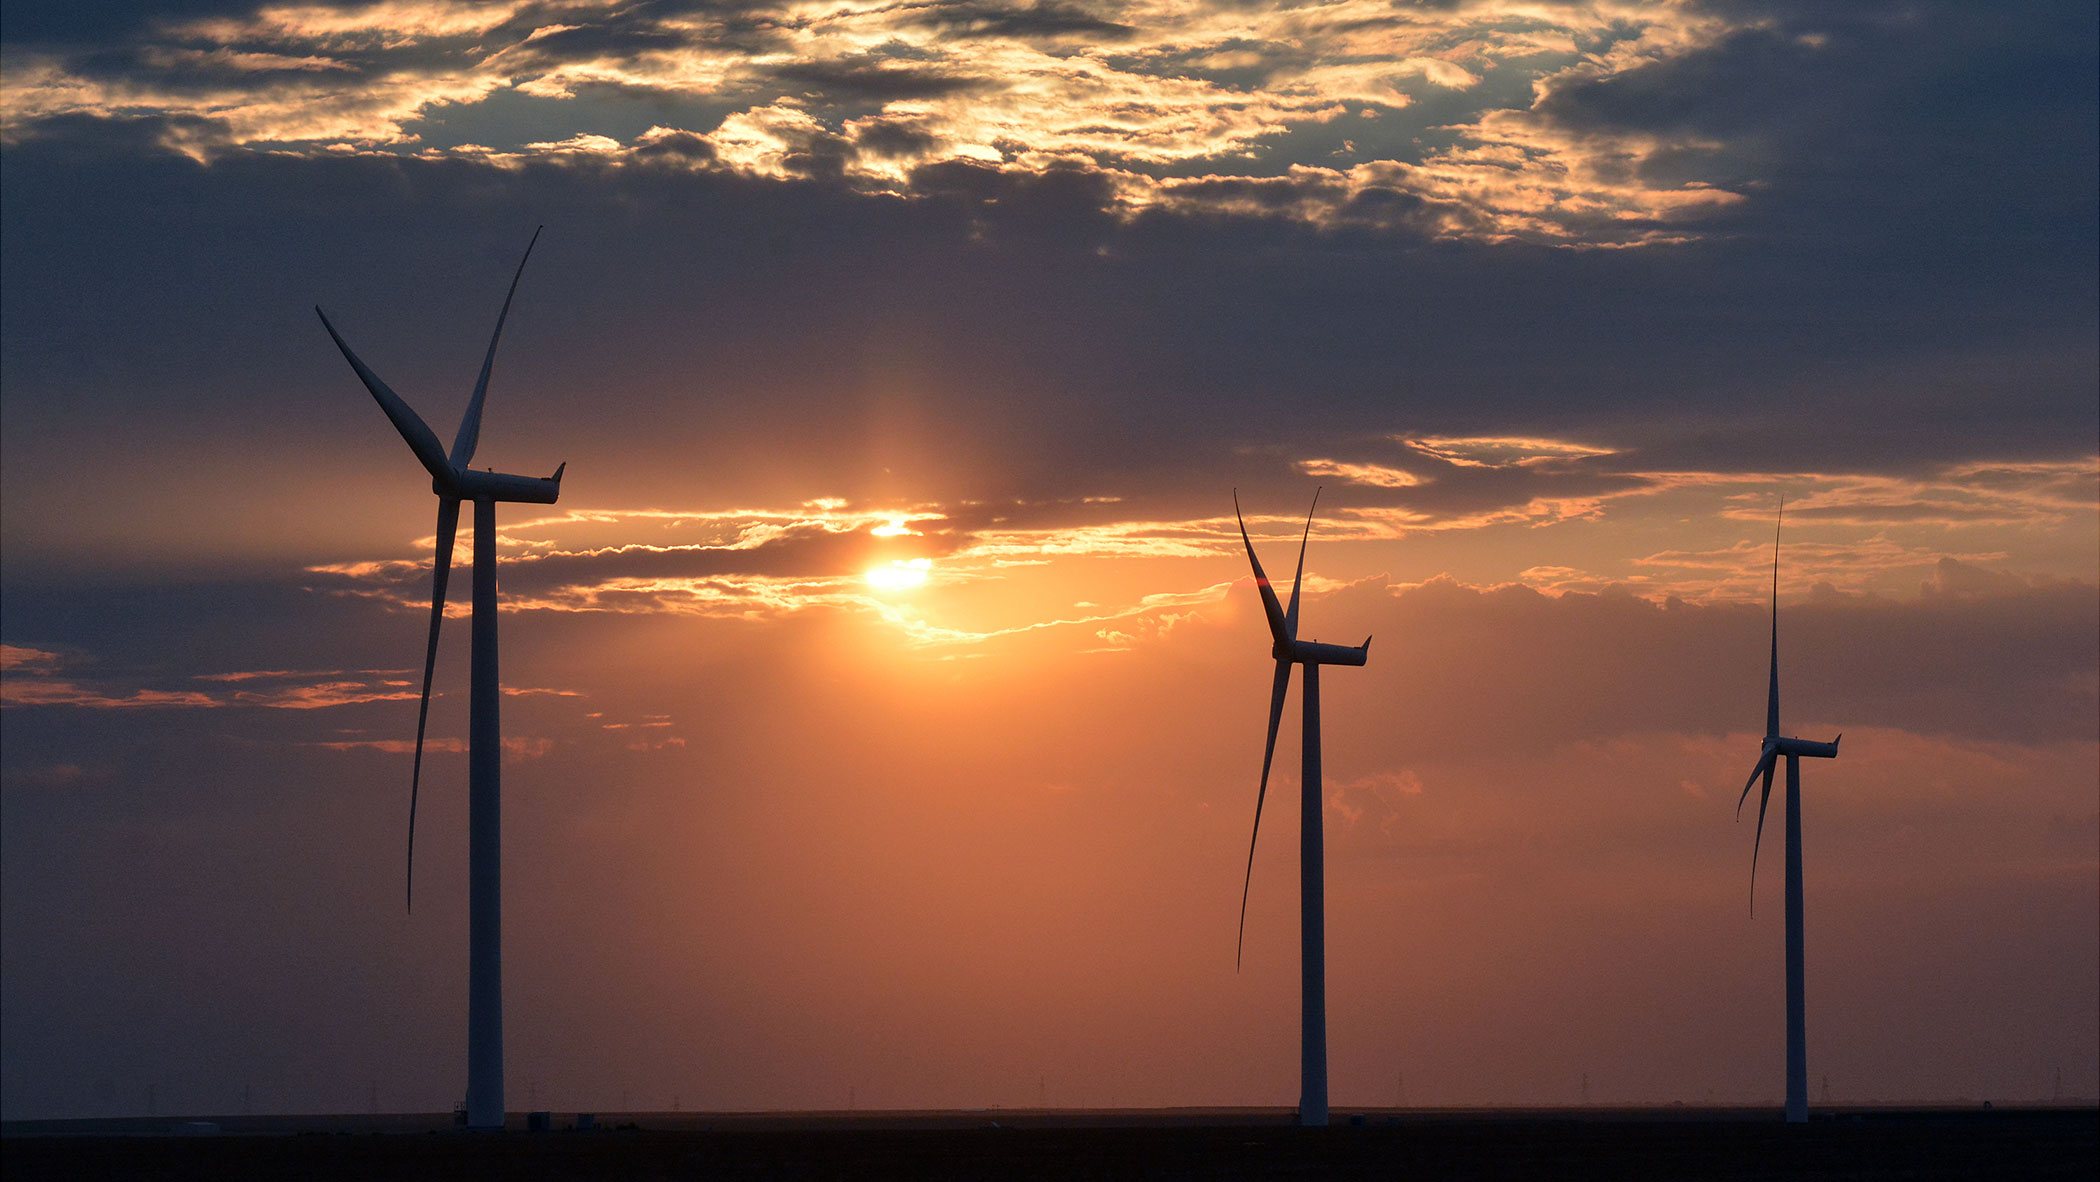 Pantex wind farm at dawn